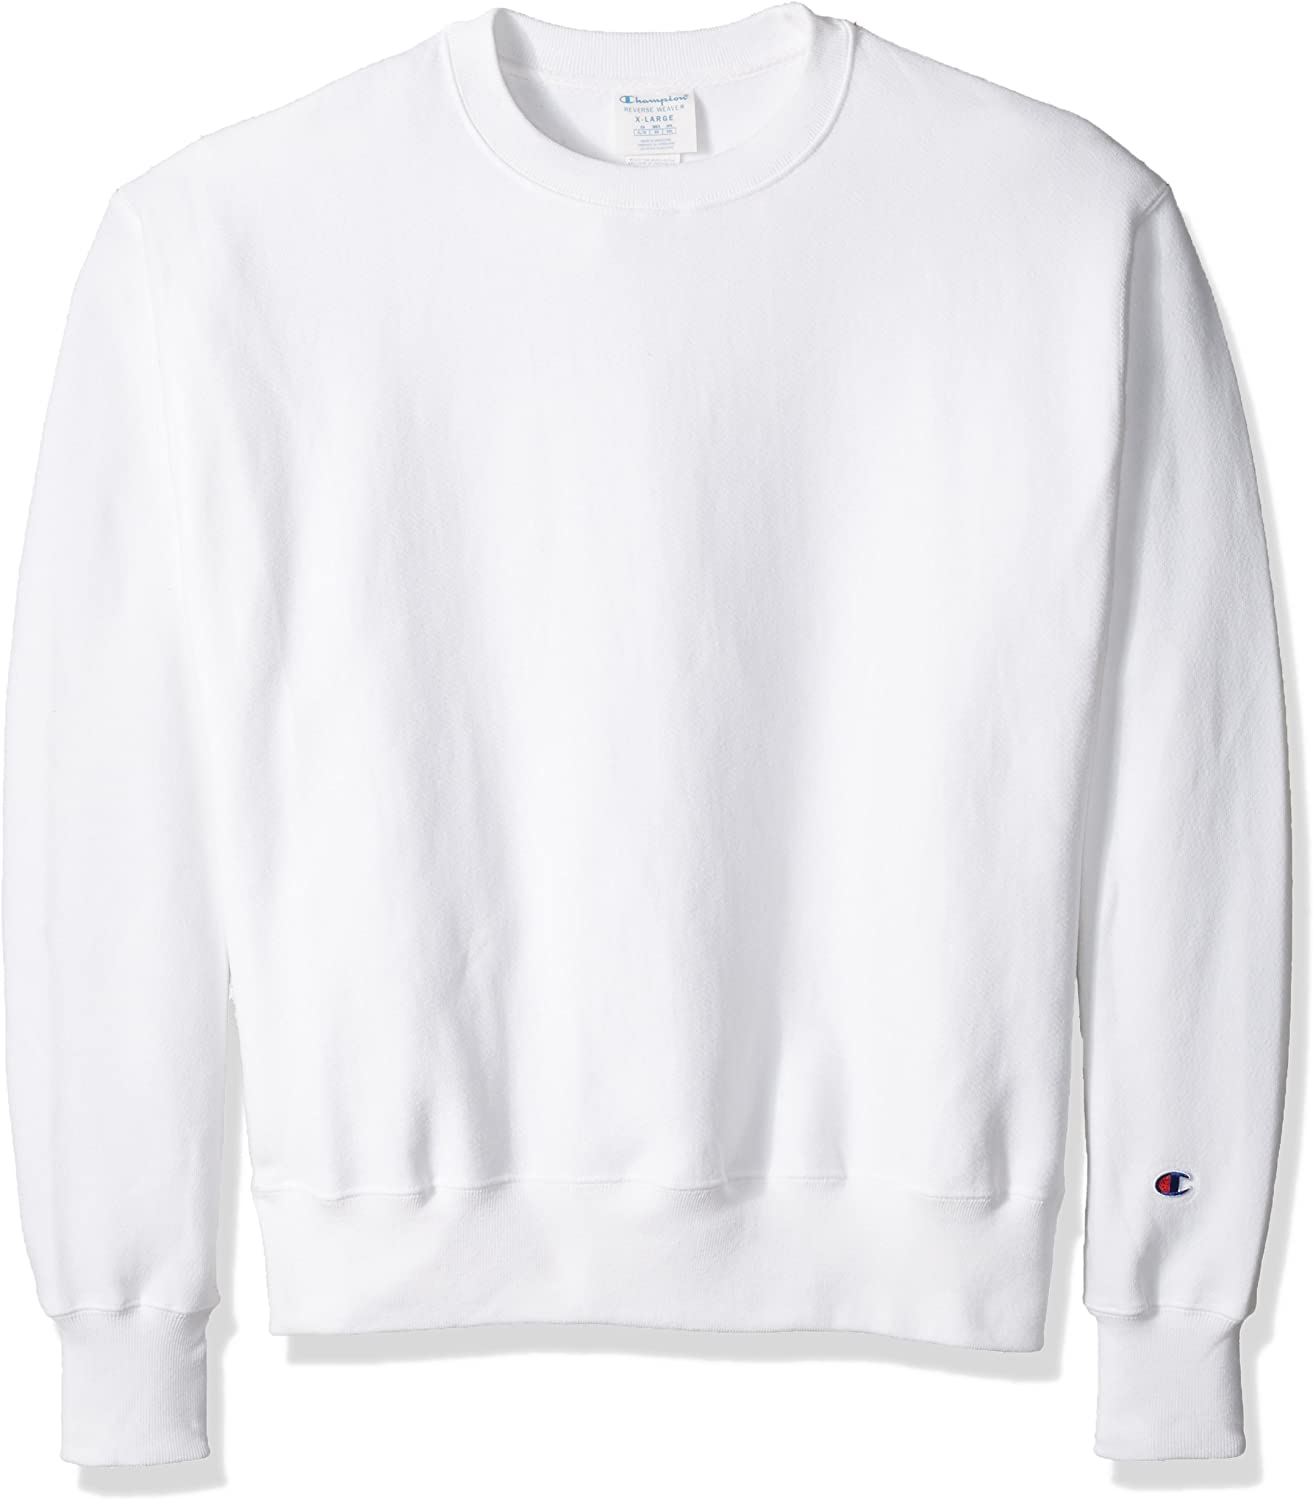 Large special price Champion Be super welcome Men's Reverse Weave Sweatshirt